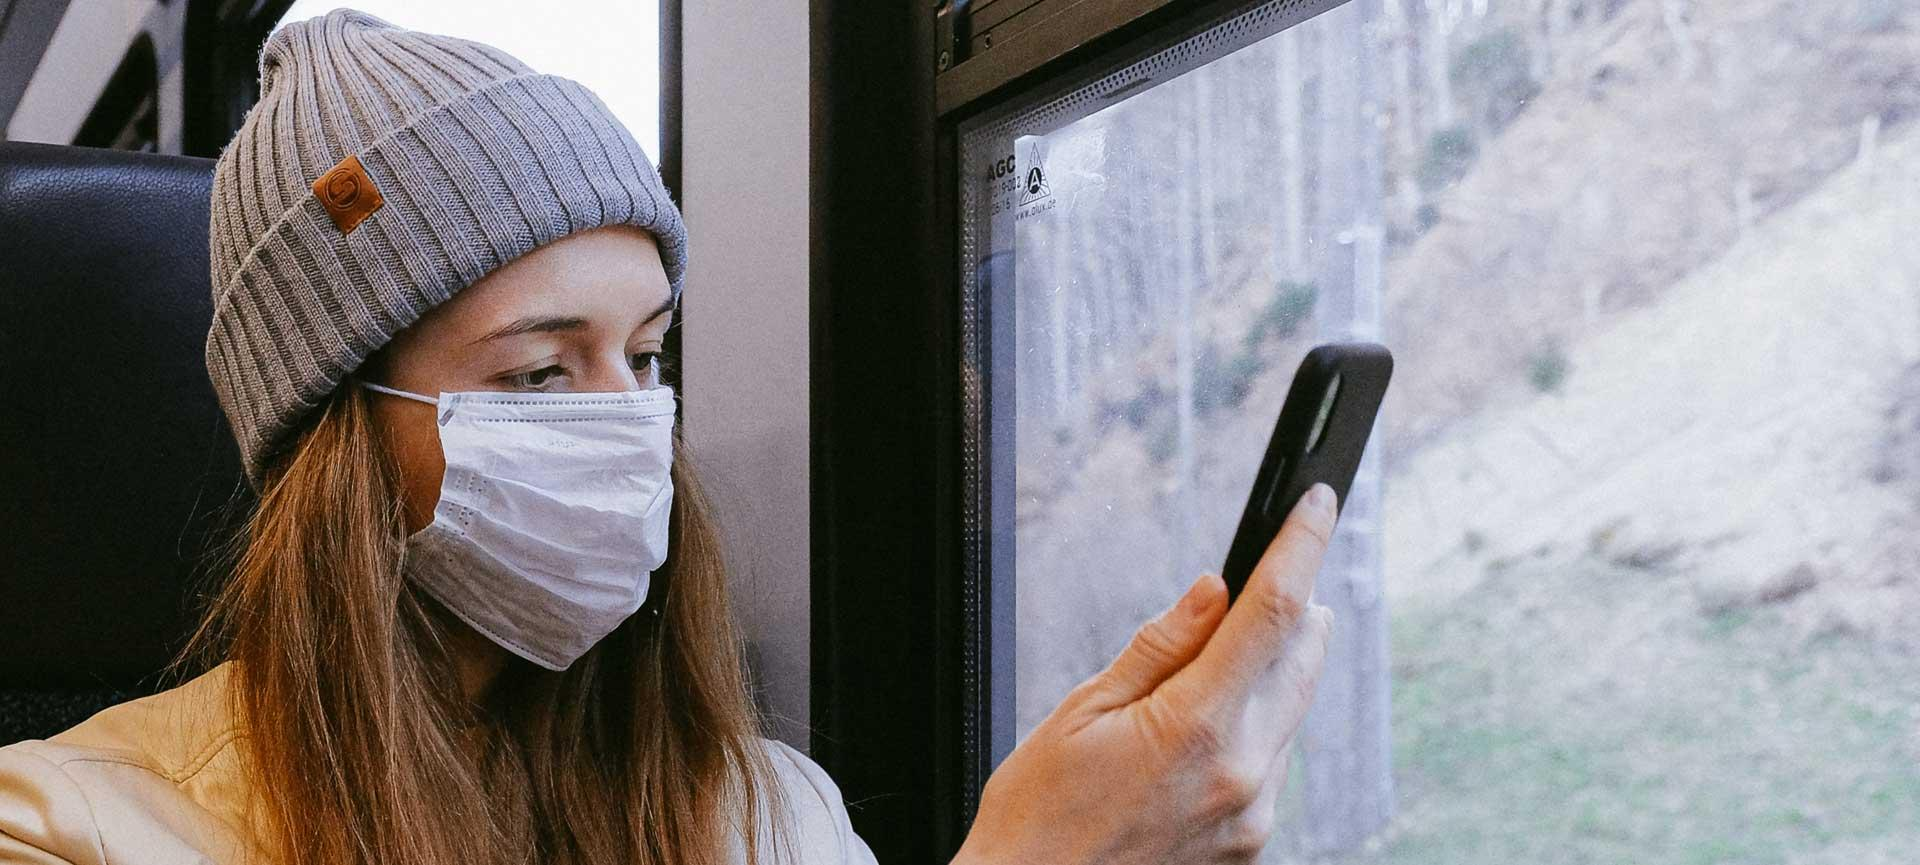 Woman wearing face mask using phone